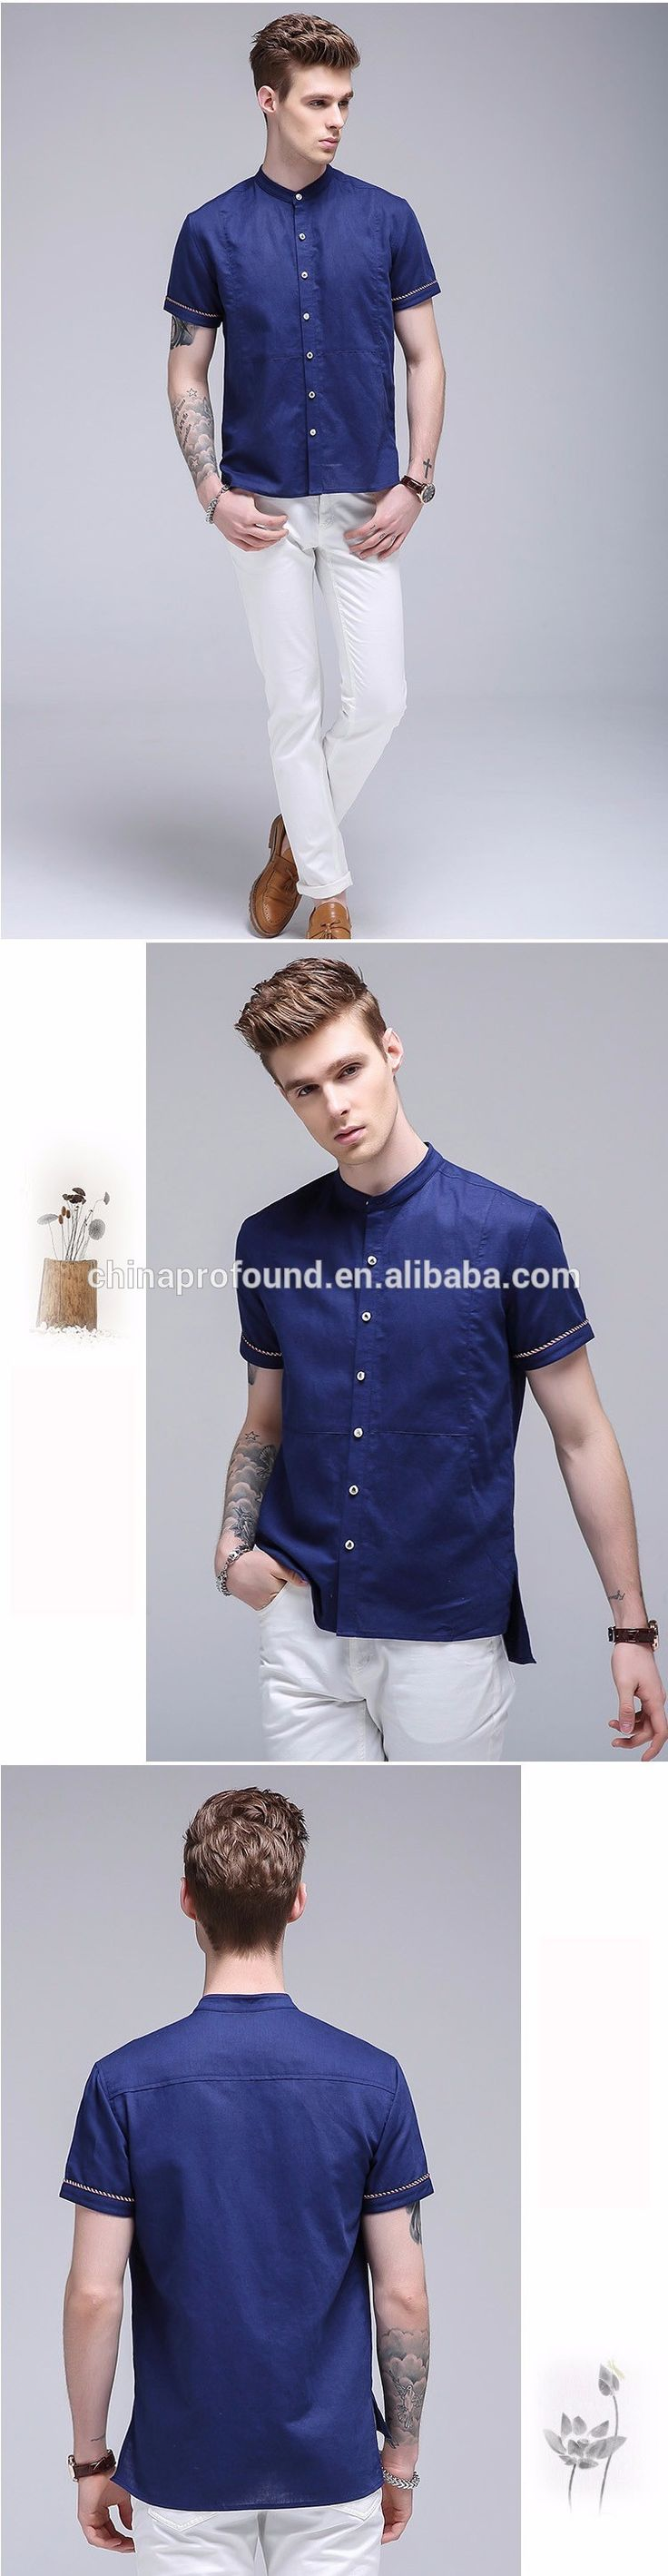 Wholesae custom design organic cotton hemp fabric shirts short sleeves comfortable cuasul flax shirts for men button up, View white linen shirts, Profound or OEM Product Details from Guangzhou Profound Garment Co., Ltd. on Alibaba.com